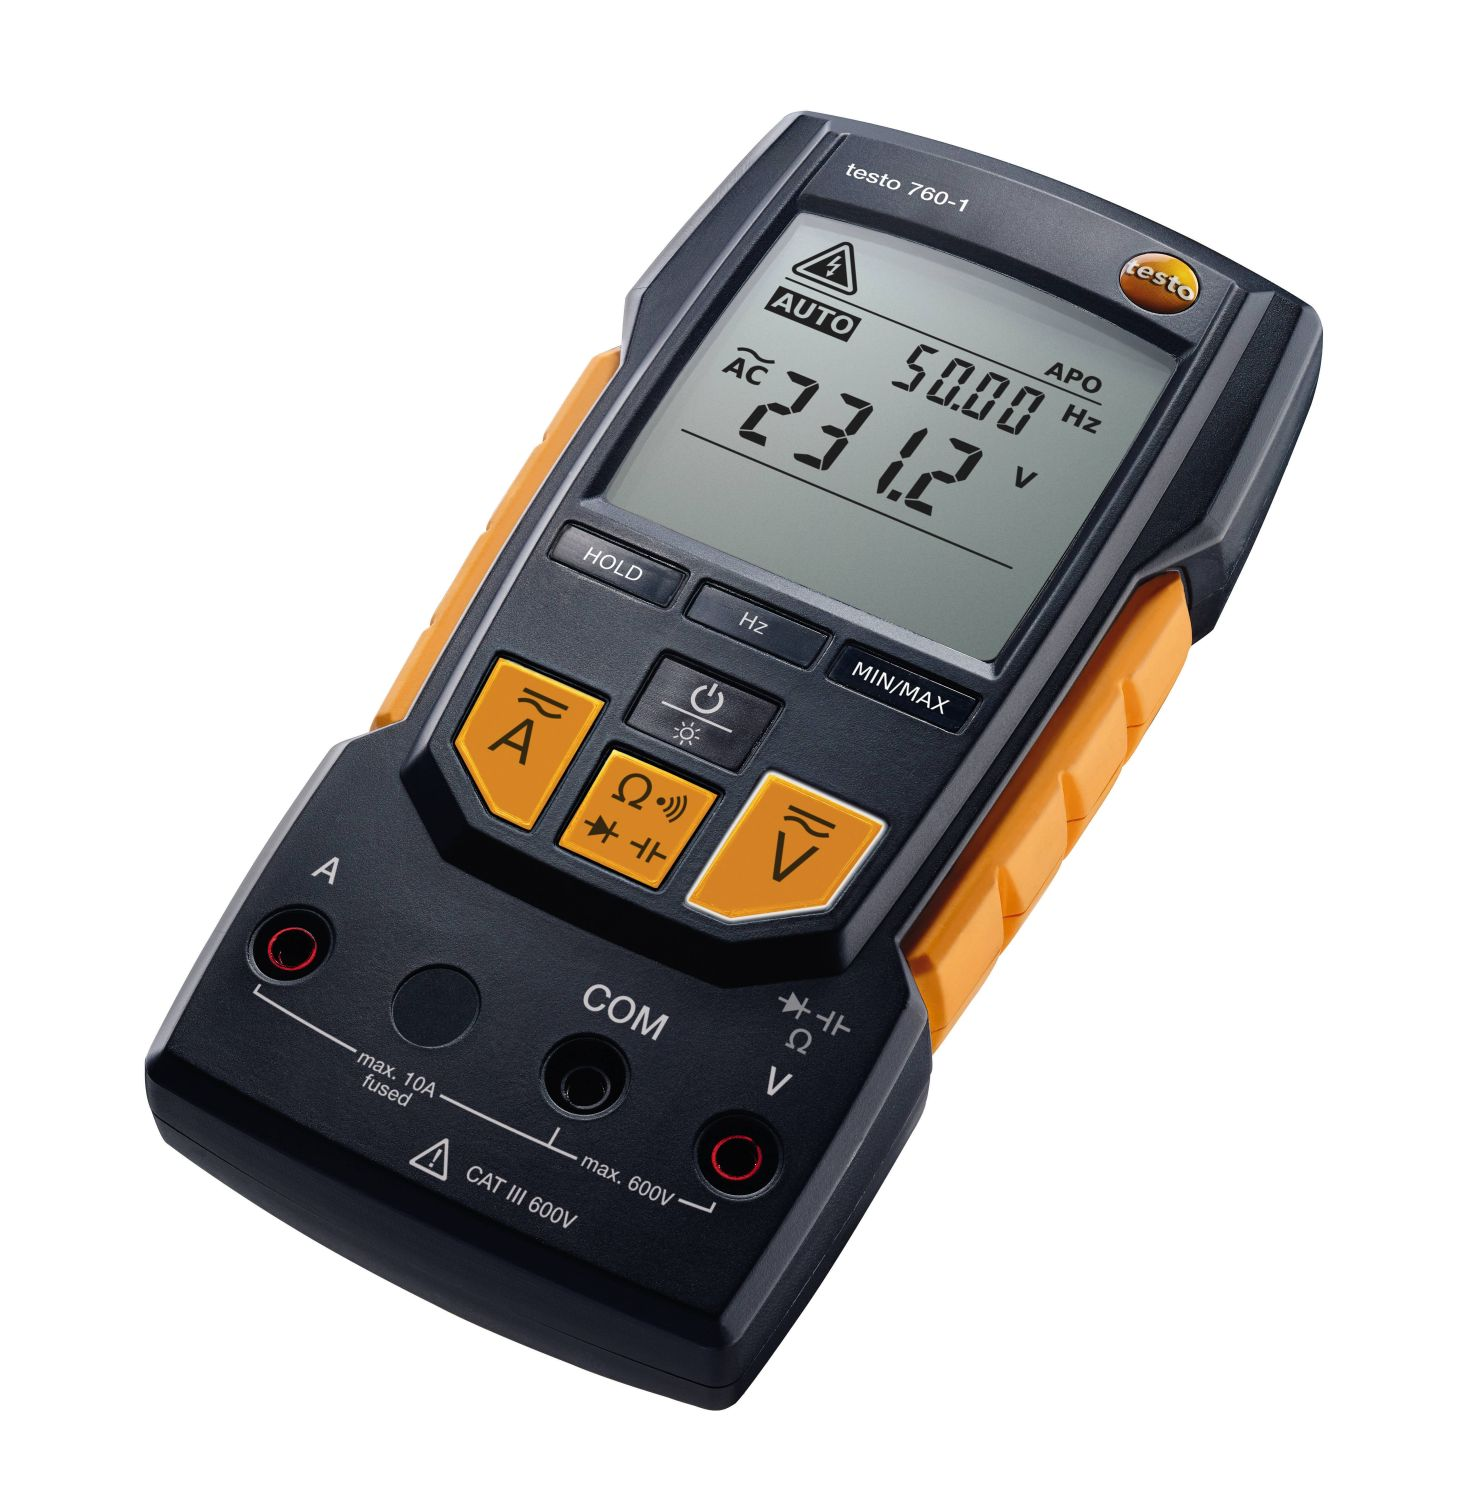 testo-760-1-instrument-others-005874.jpg